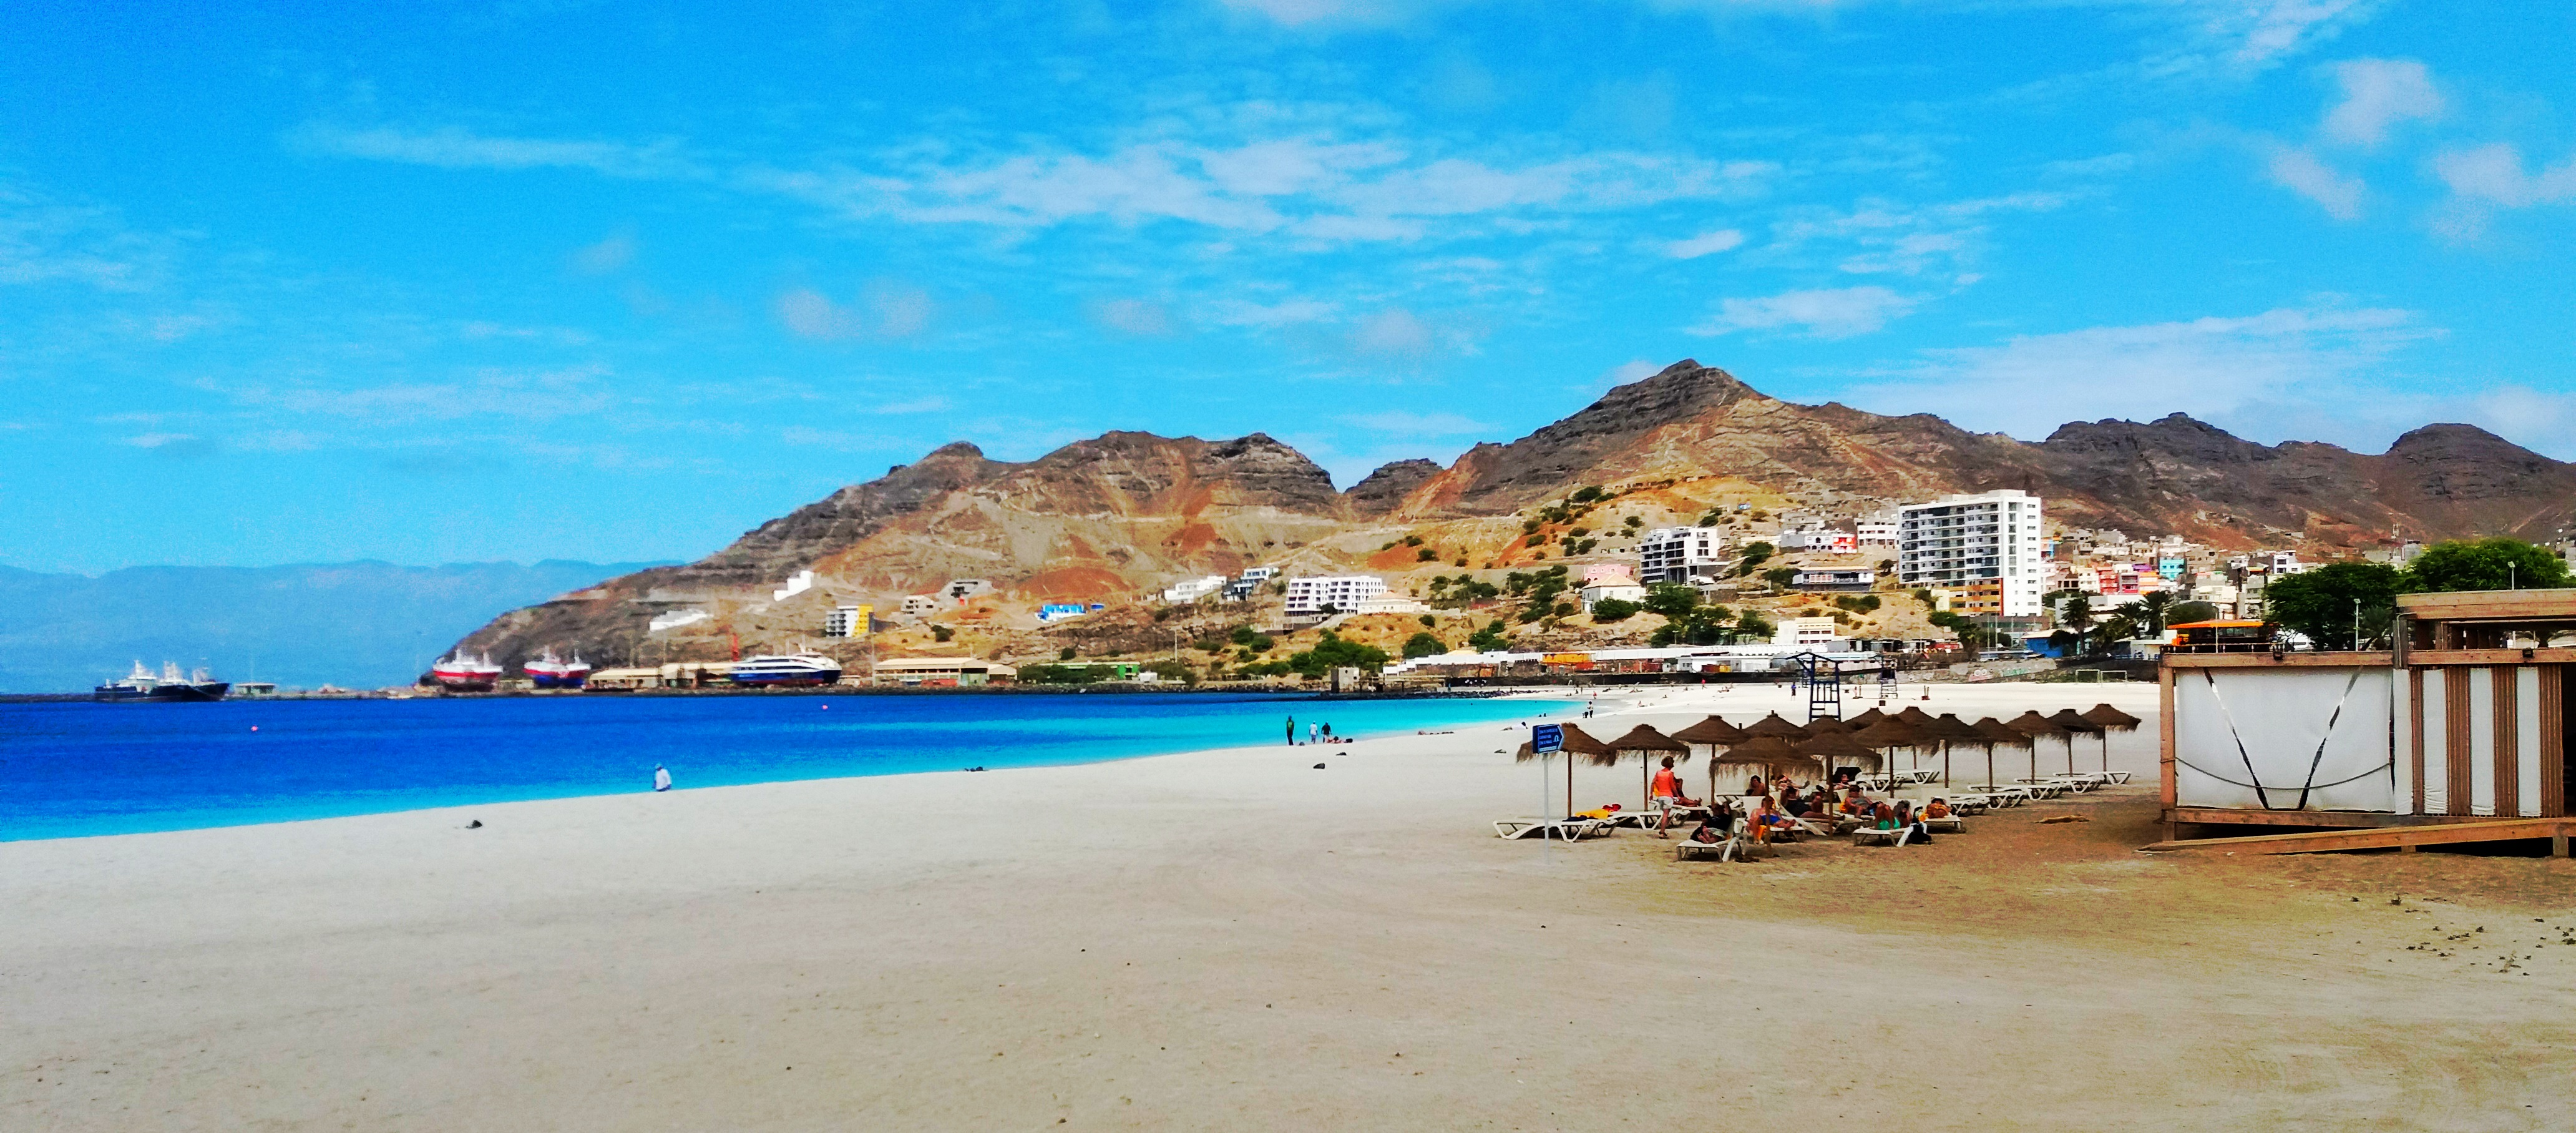 Your Guide to The Cape Verde Islands     Flying Dutchman Pat Cape Verde  or Cabo Verde  is a volcanic archipelago off the northwest  coast of Africa  off the coast of Senegal to be precise   Cape Verde was a  Portuguese